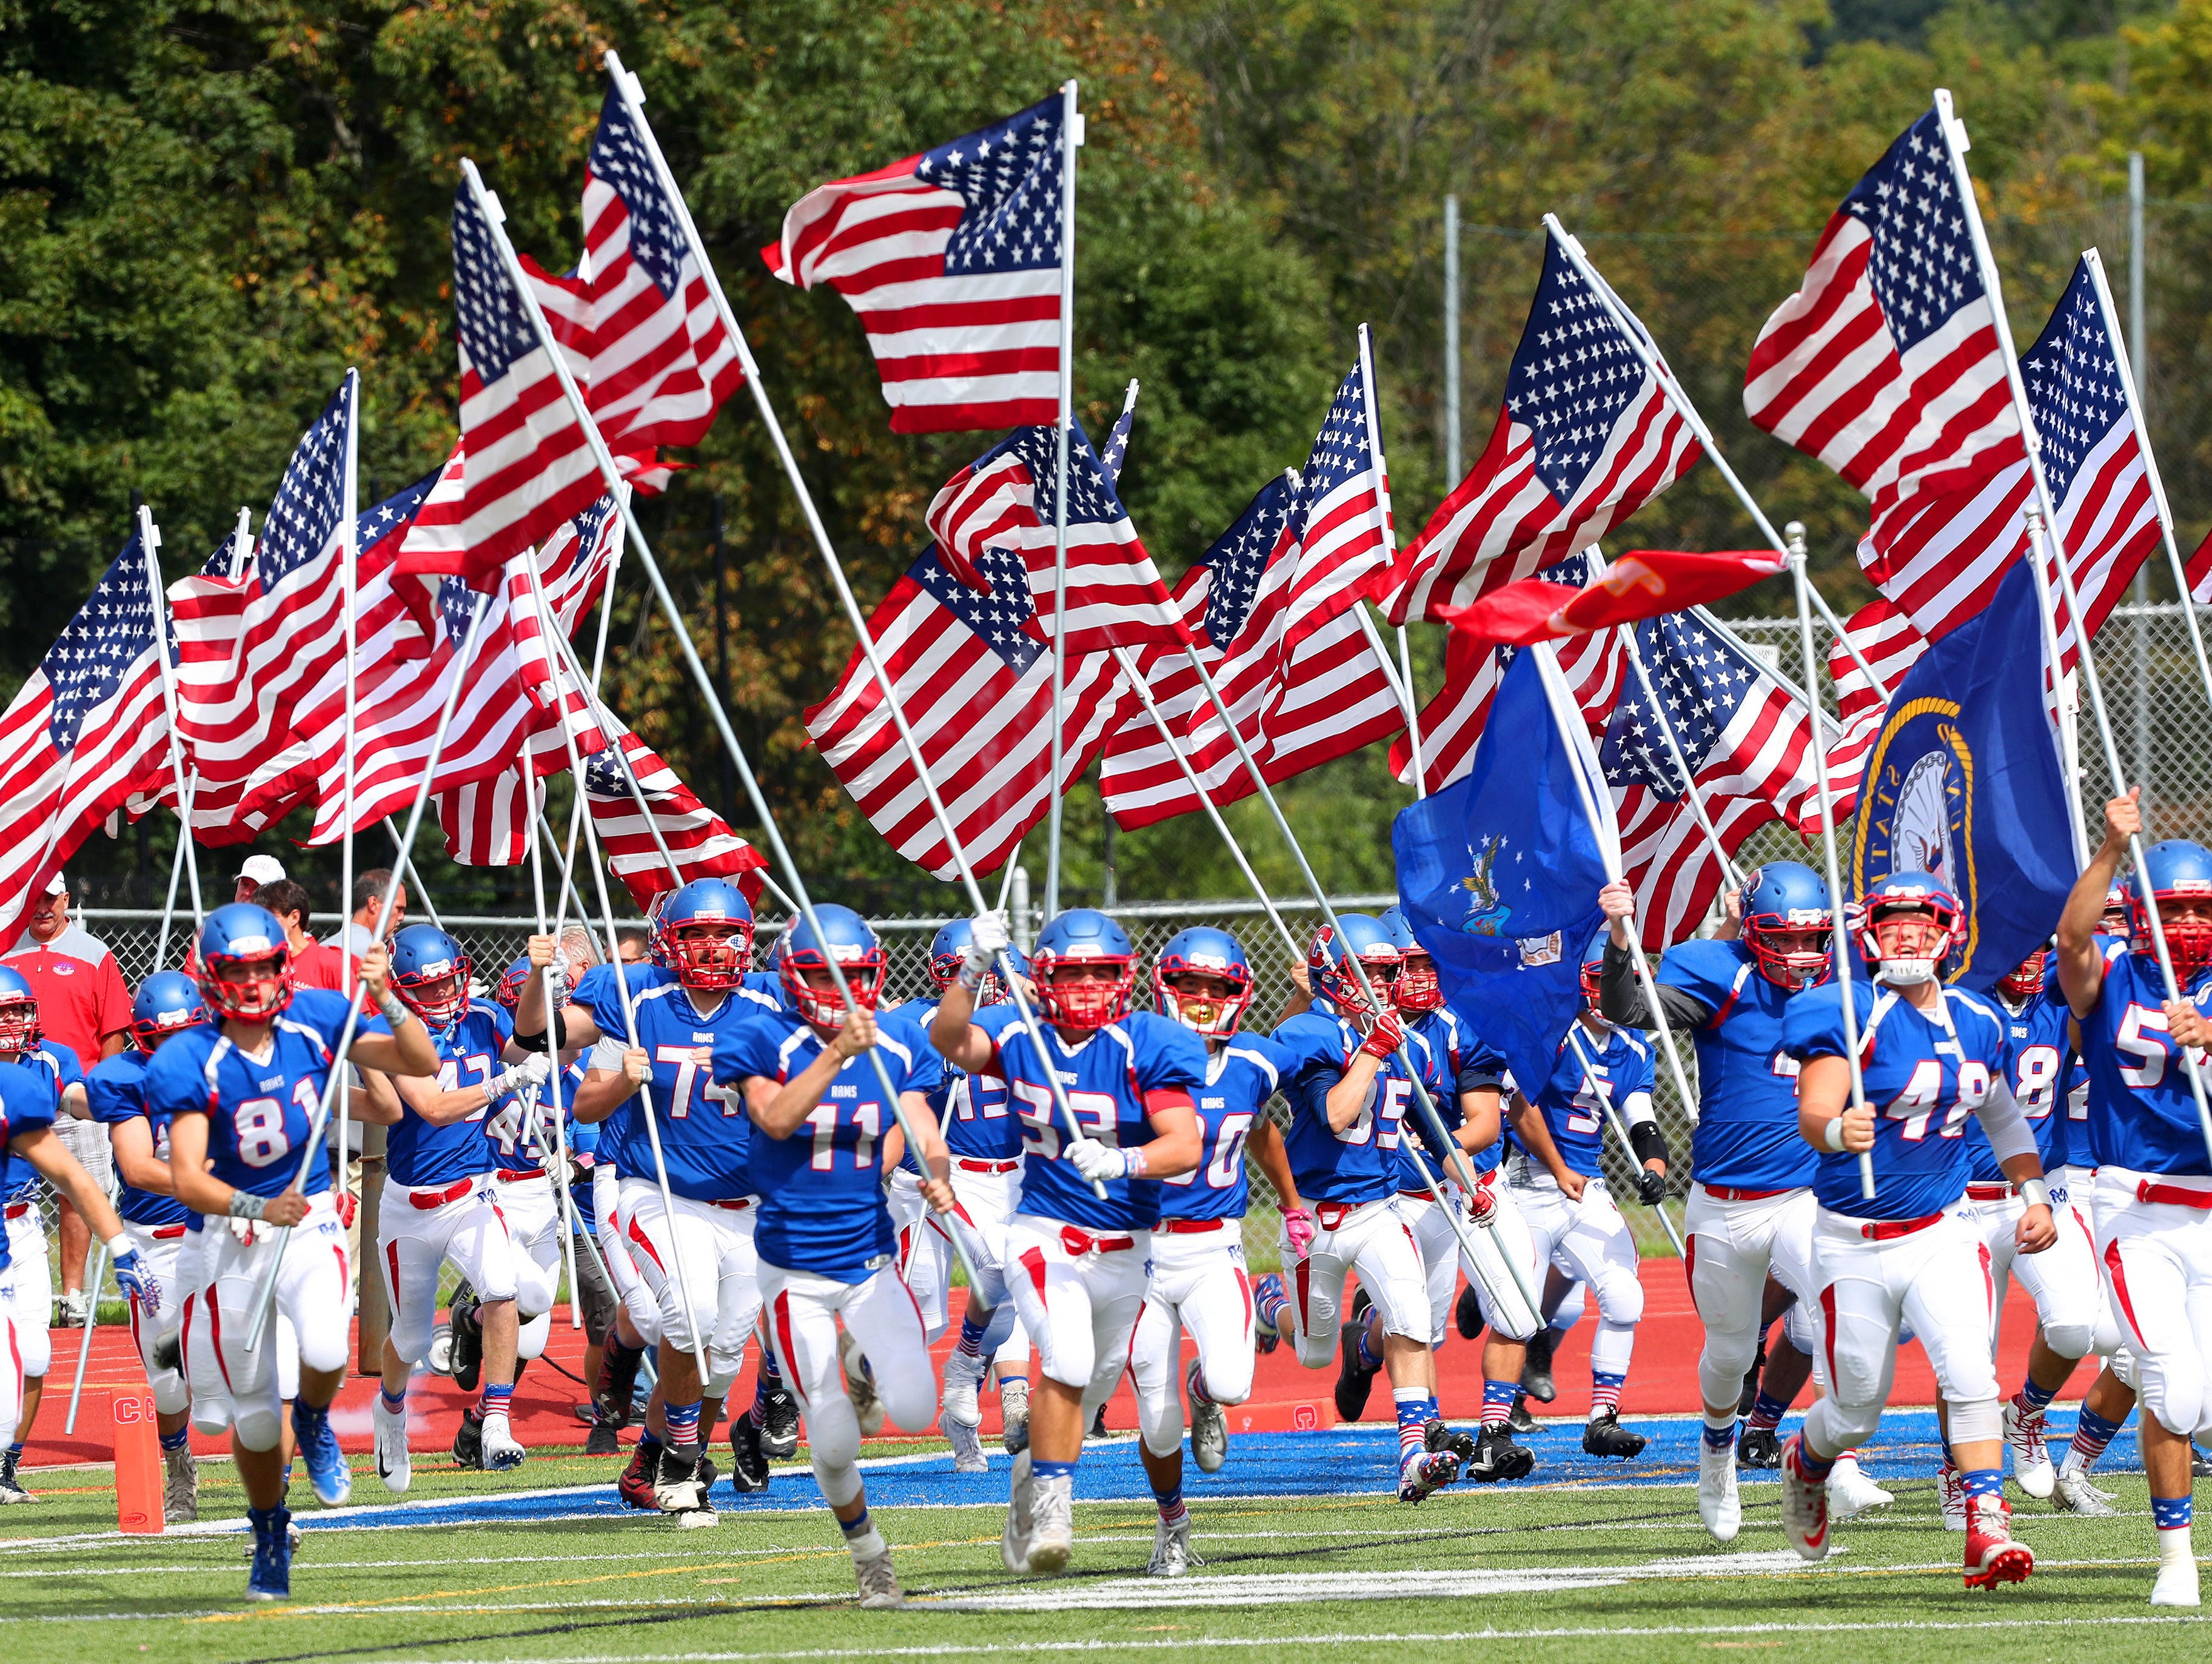 The Carmel football team runs onto the field carrying American flags prior to the start of the game against North Rockland  at Carmel High School Sept. 22, 2018.